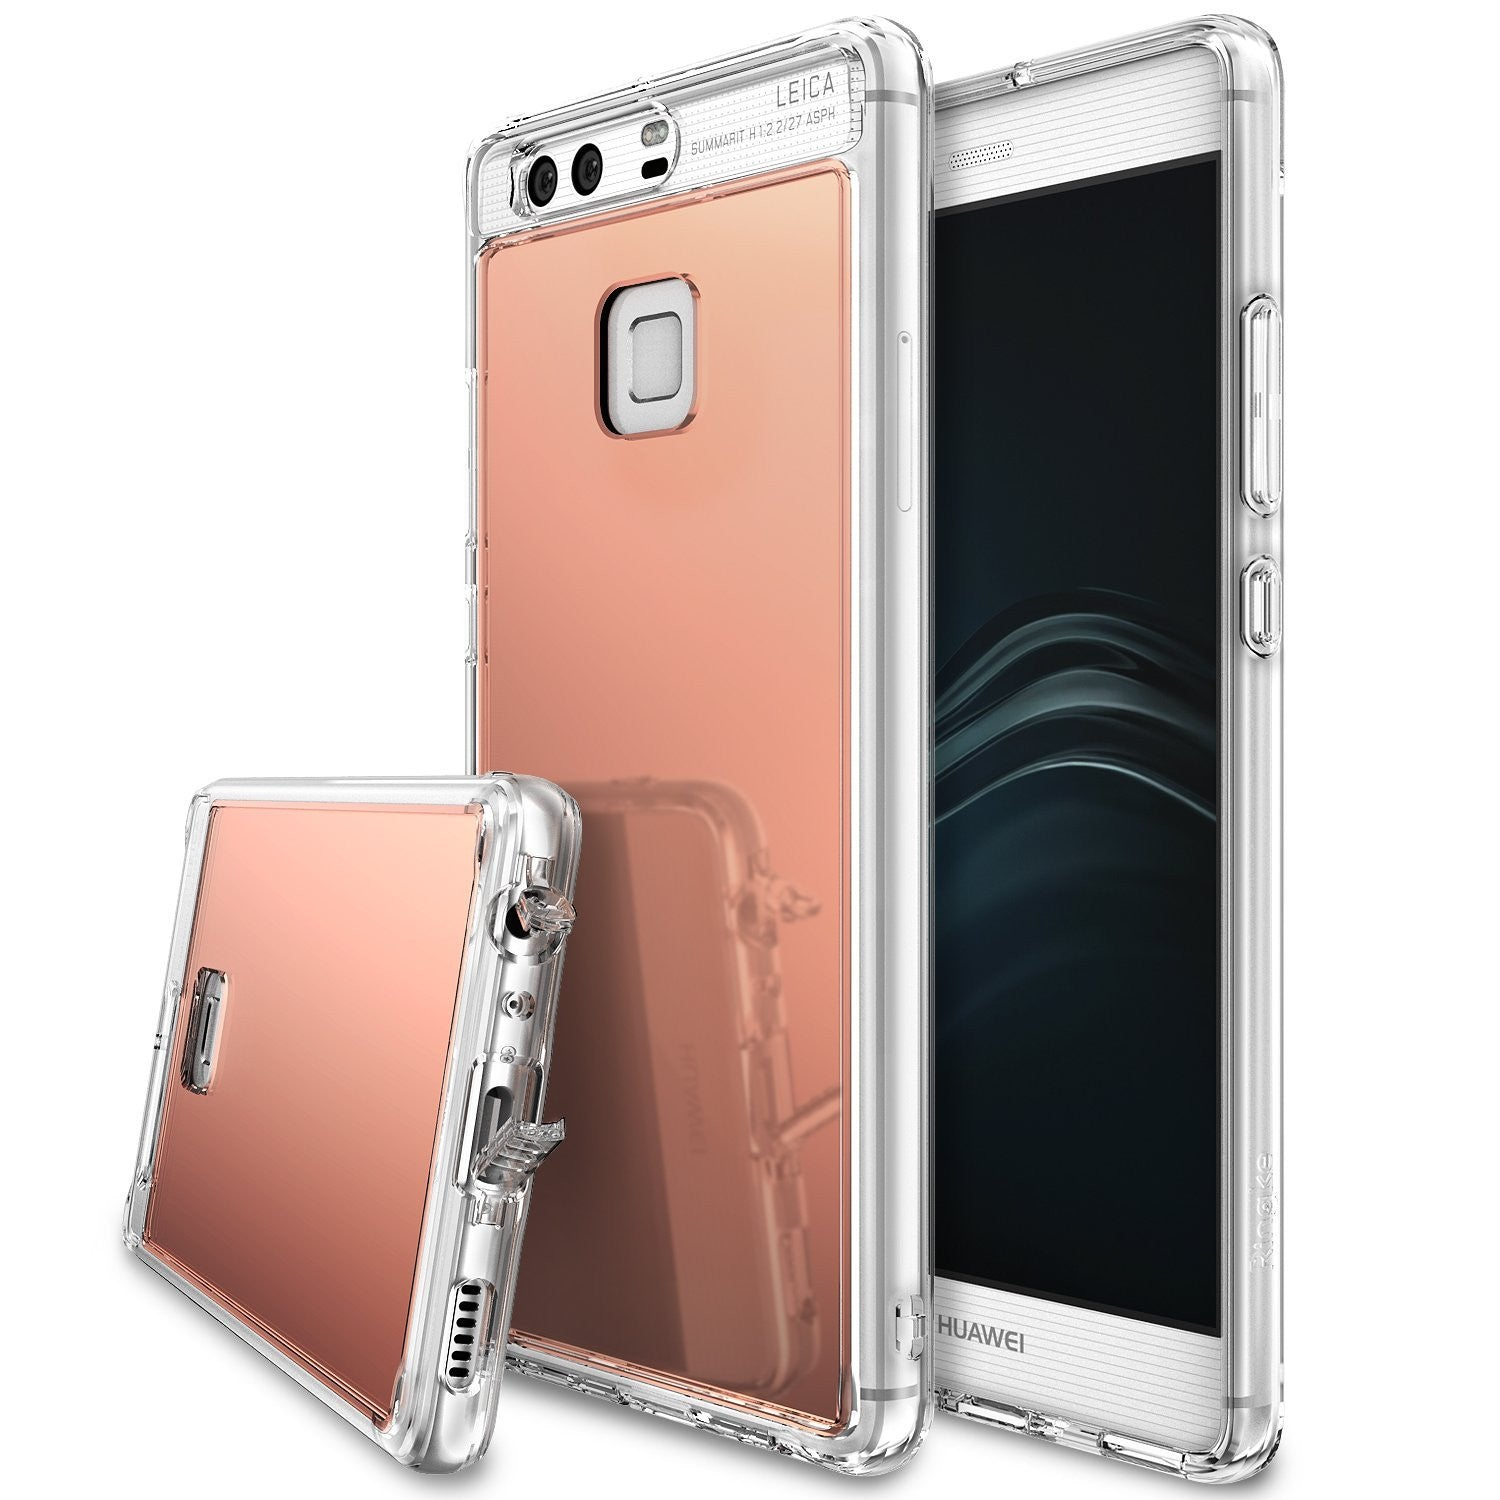 fusion case mirror case huawei mate 8 bright reflection radiant luxury mirror case royal gold